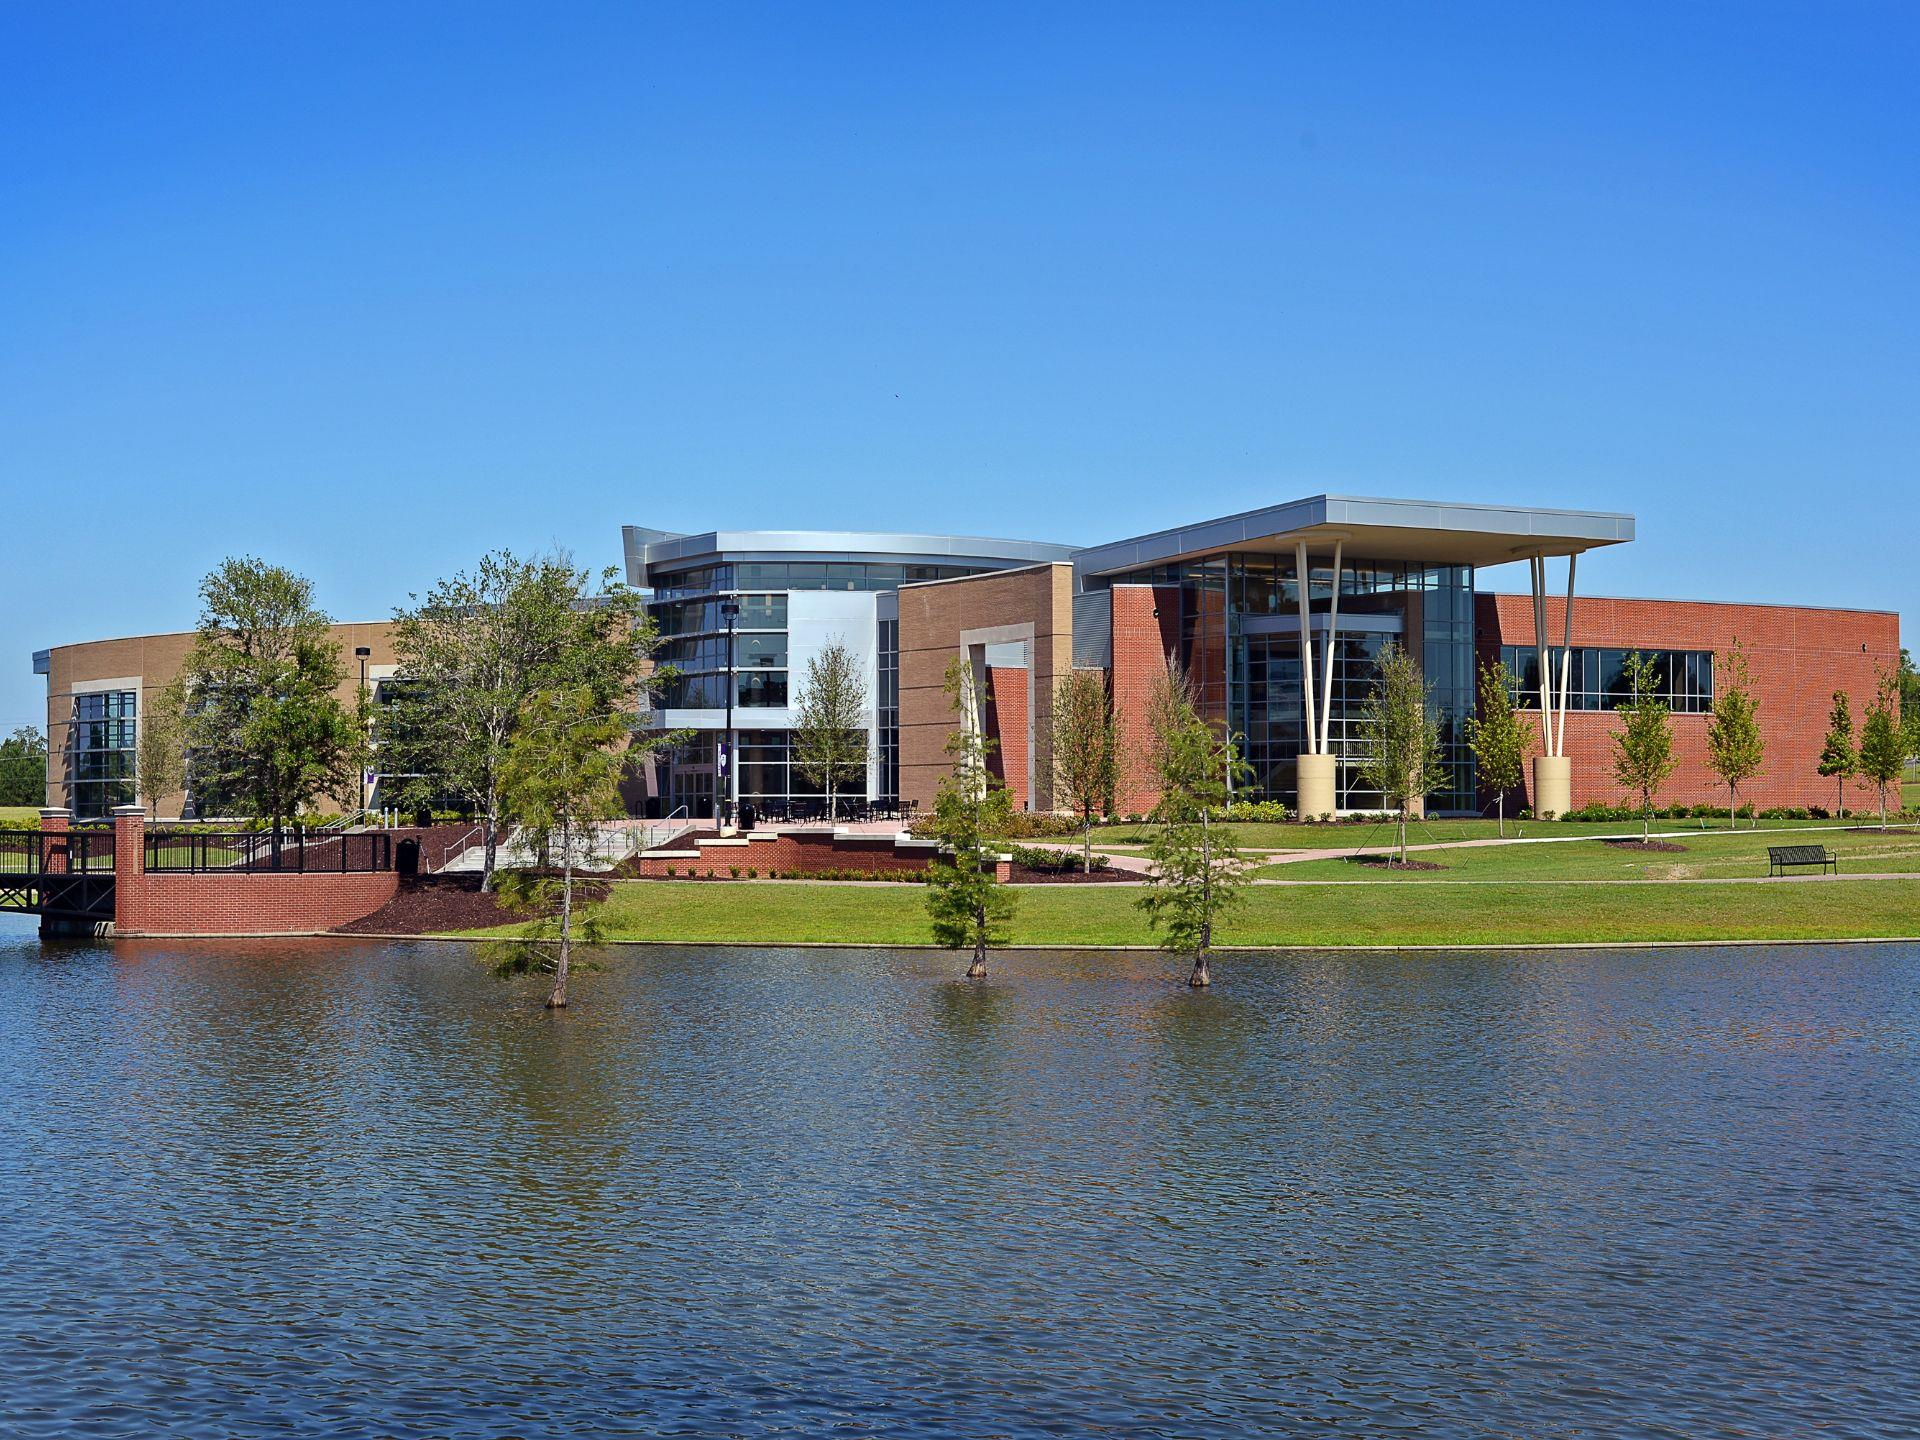 Exterior shot of Middle Georgia State University Recreation & Wellness Center with lake in front